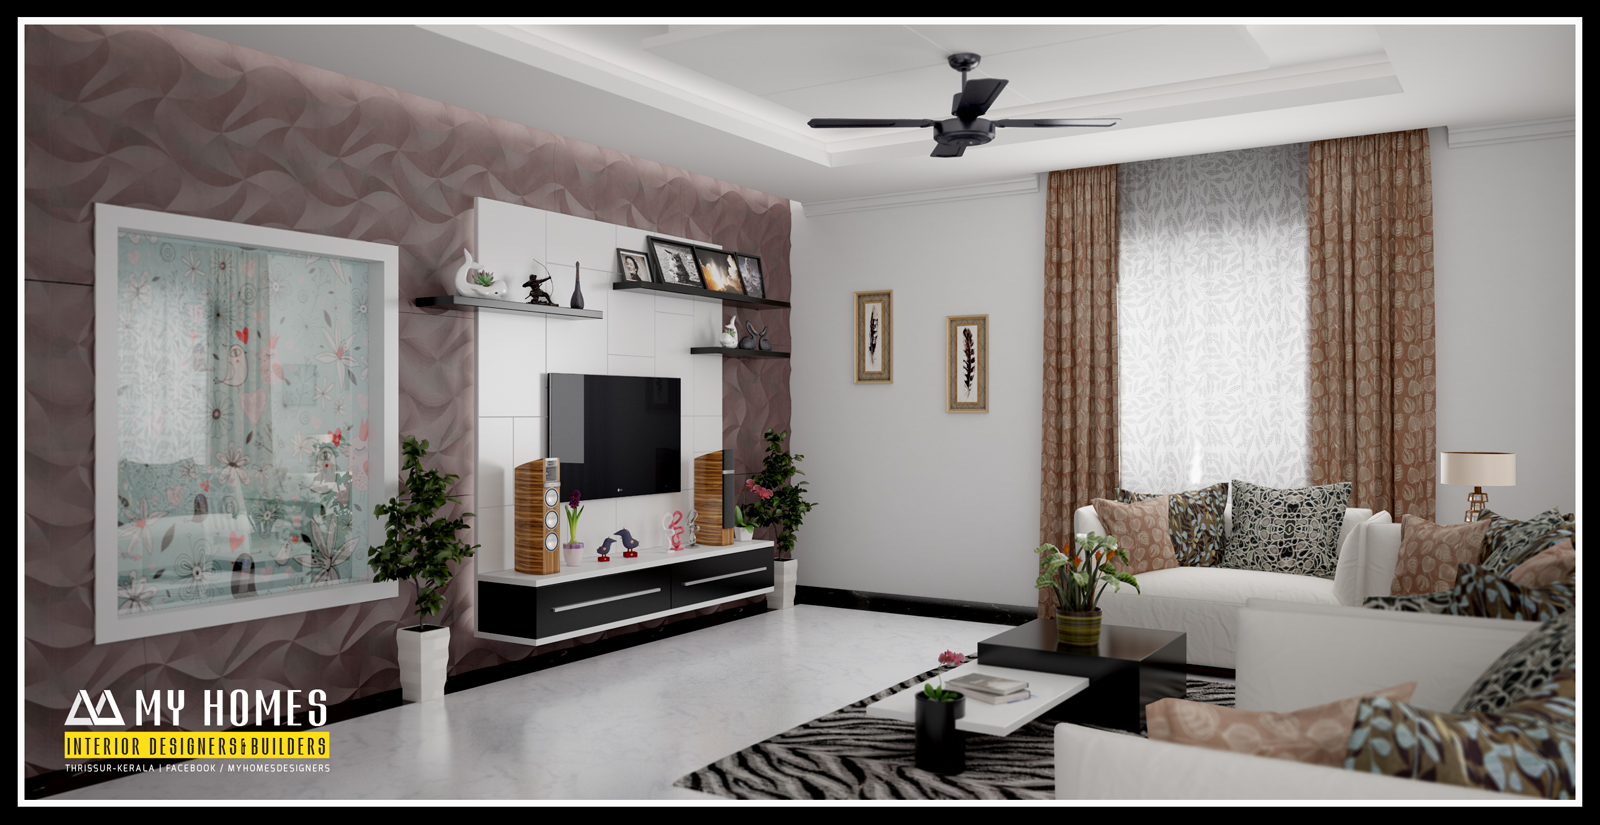 Kerala interior design ideas from designing company thrissur Interior designing of your home